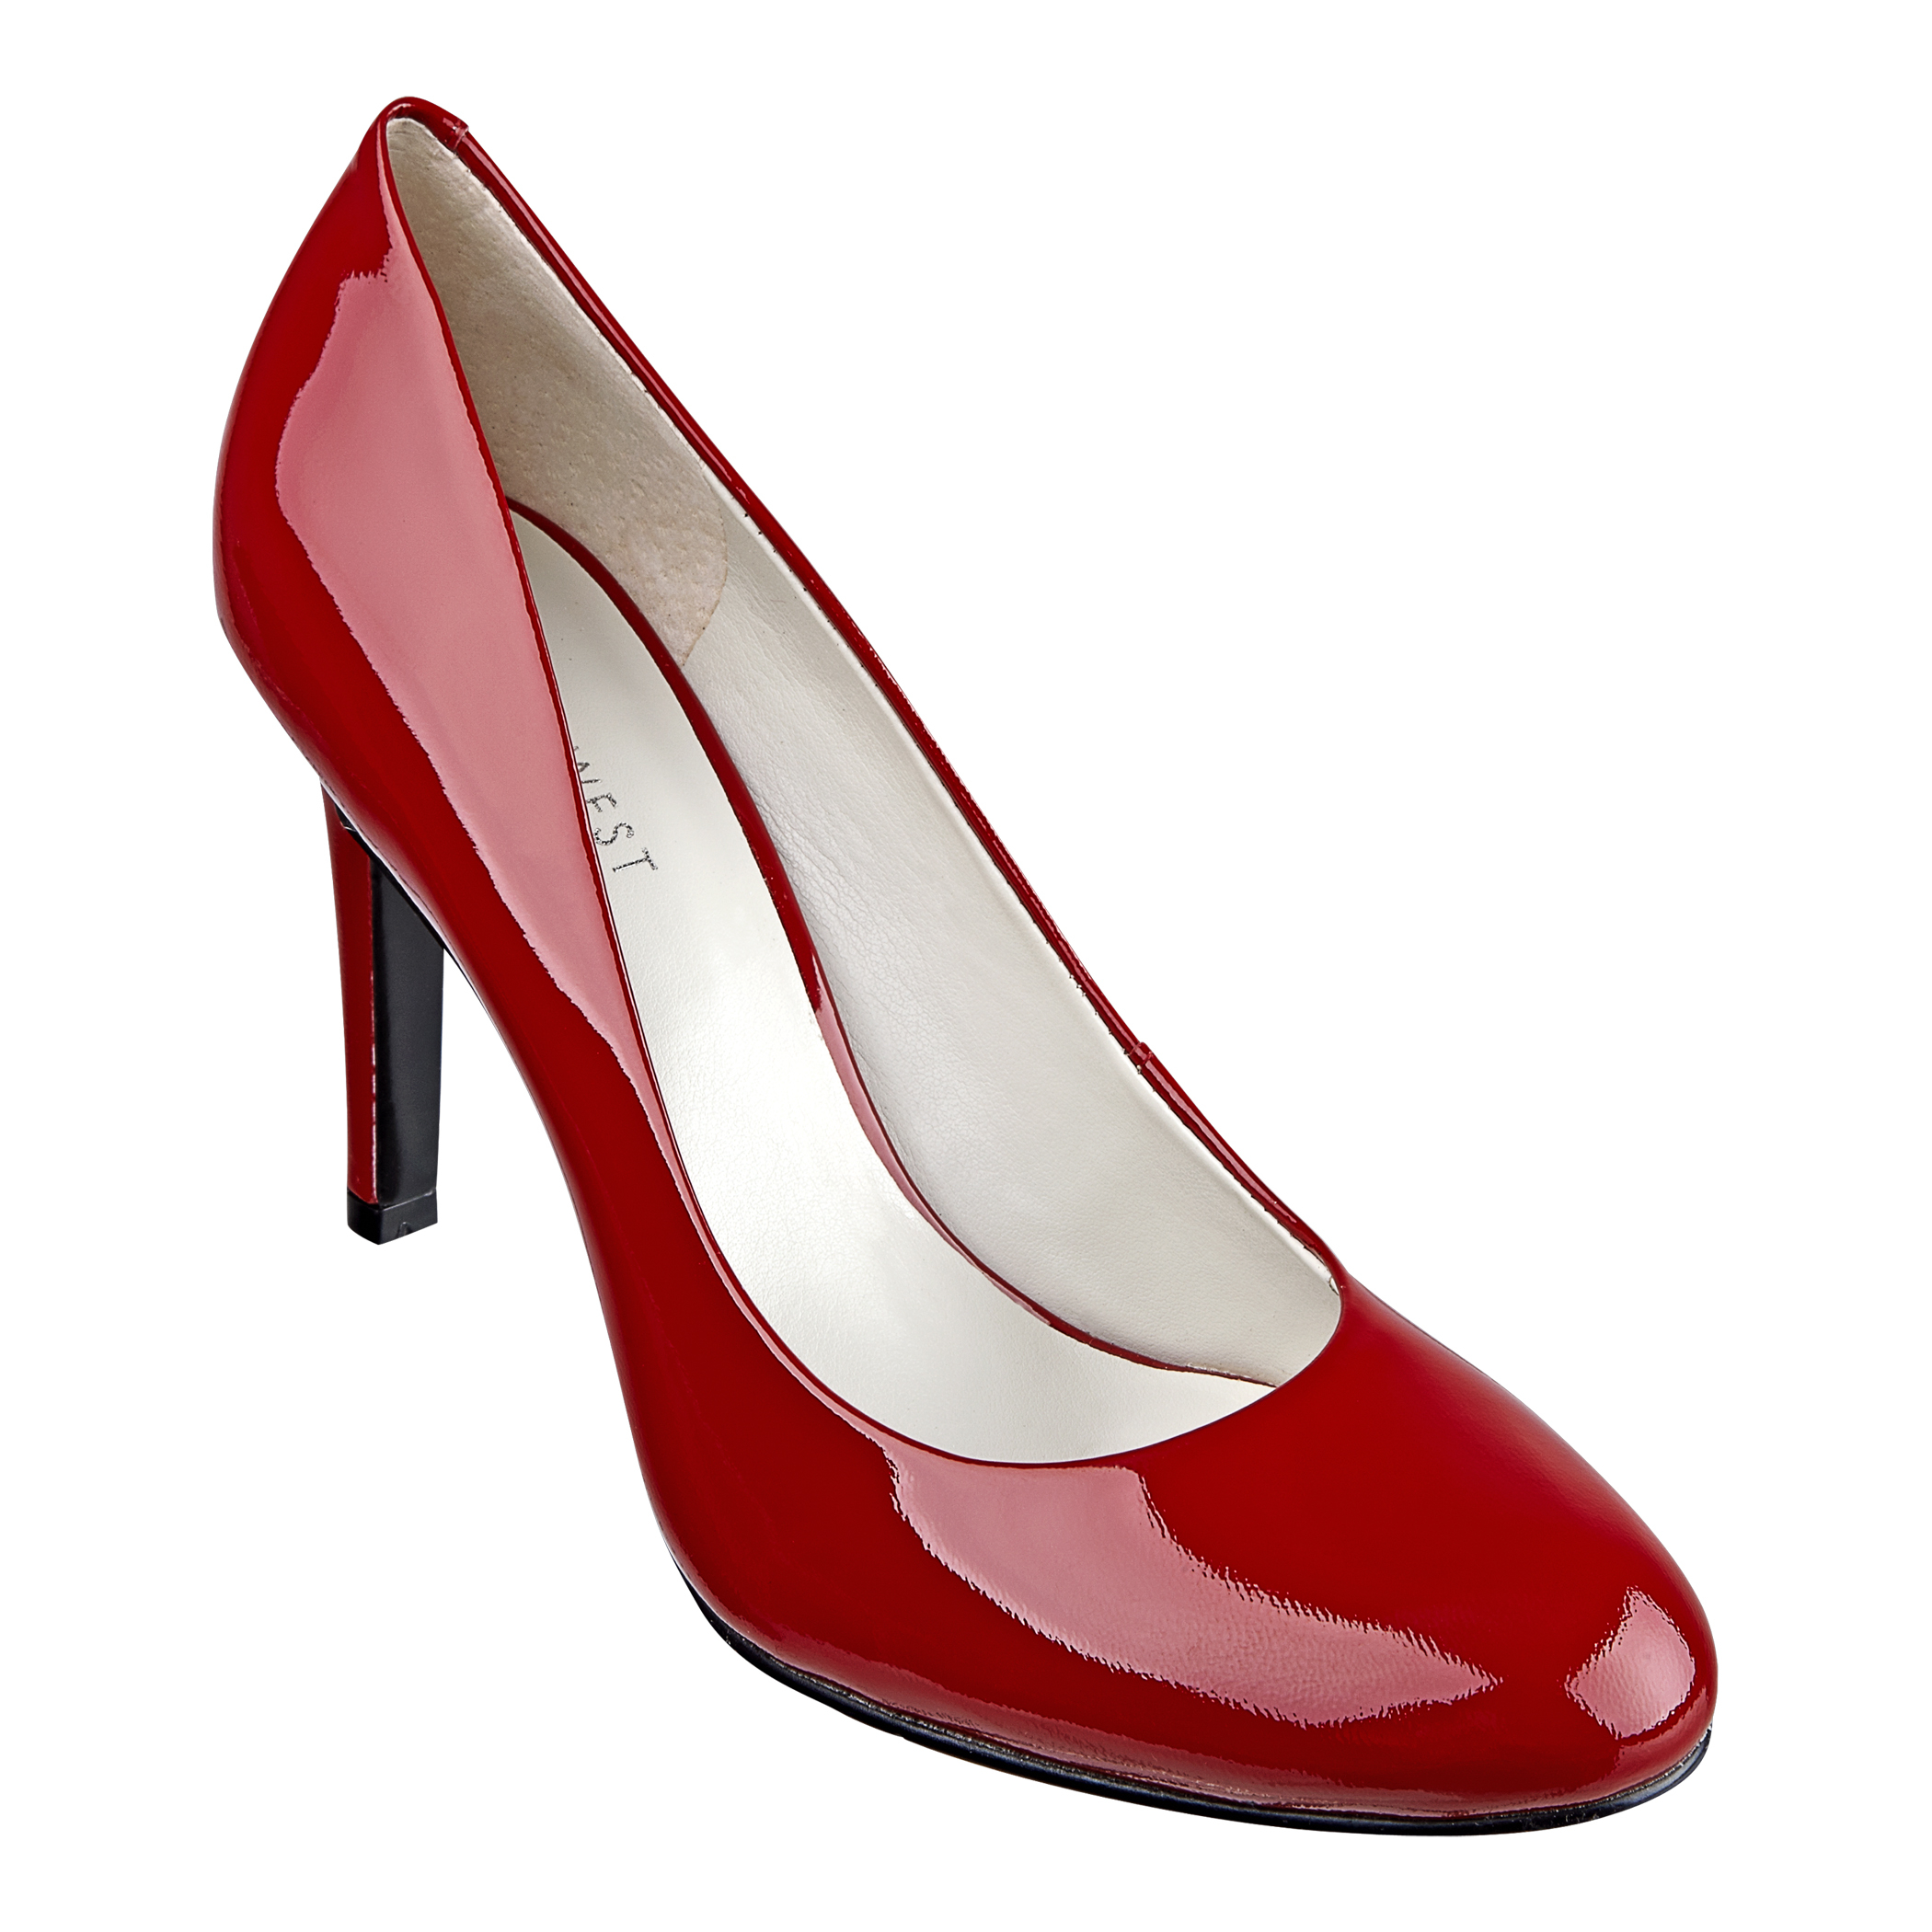 80695b7c8 Nine West Caress Round Toe Pump in Red - Lyst